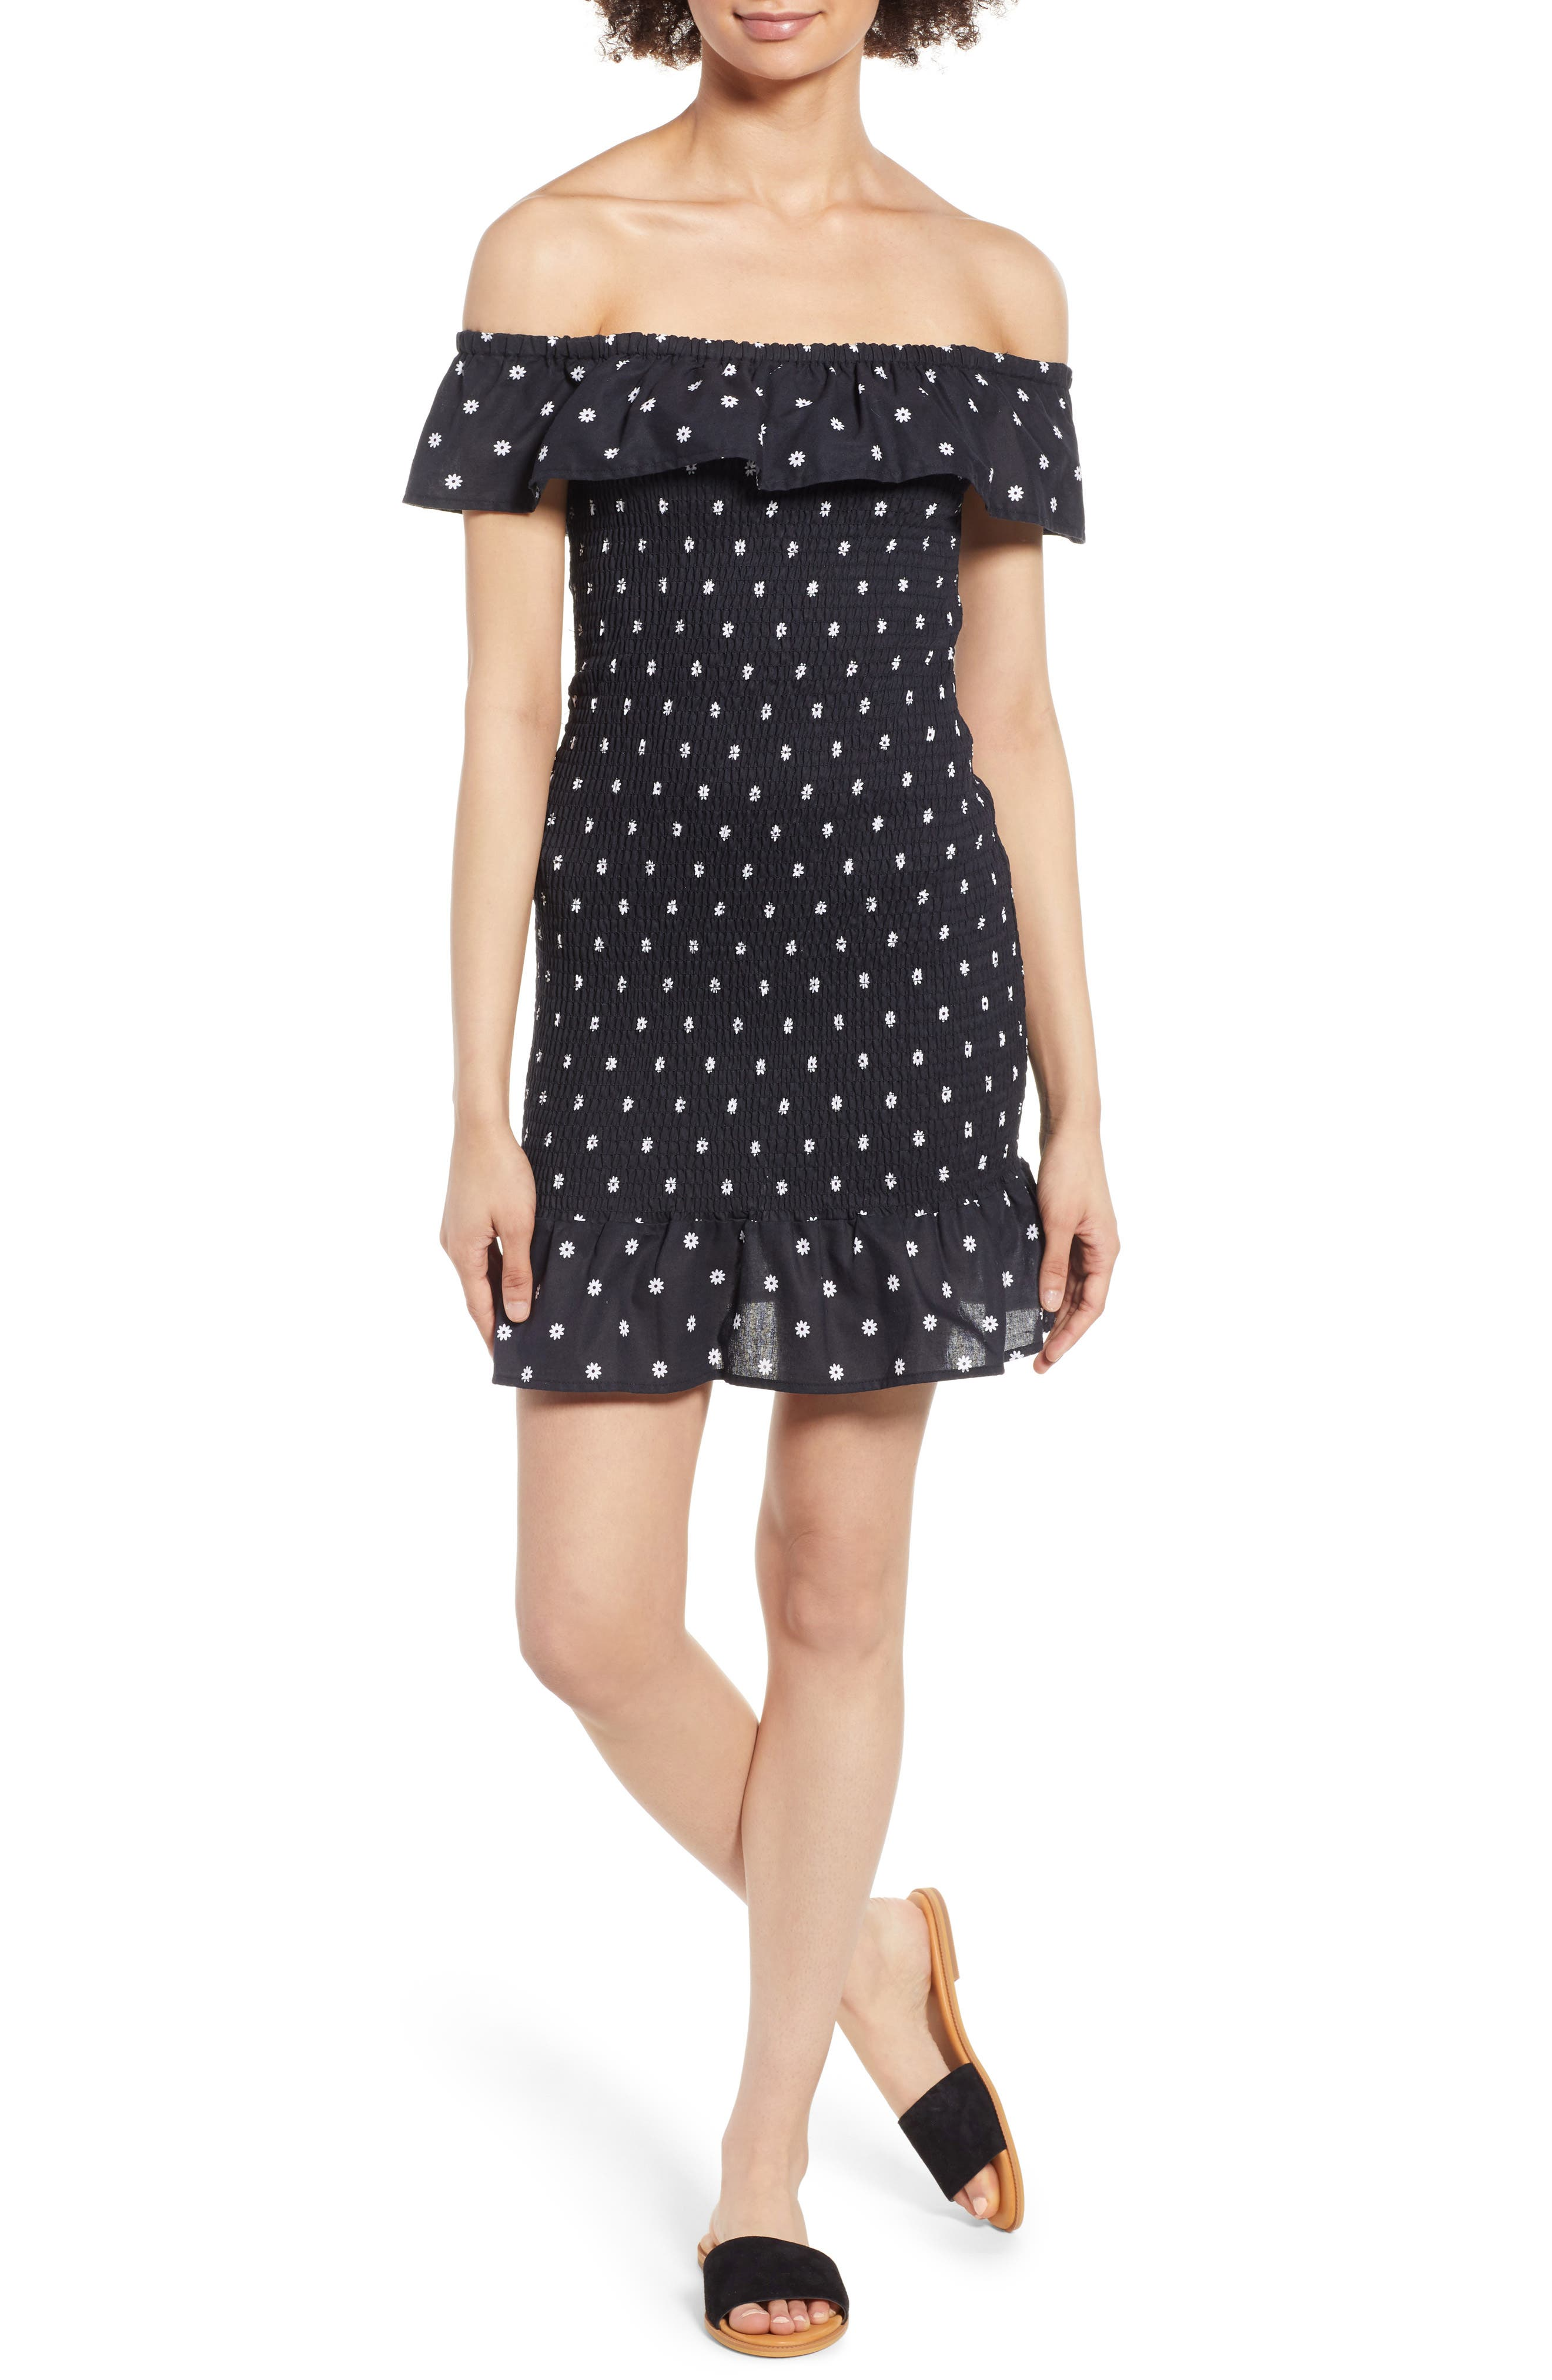 Fiesta Daisy Print Smocked Off the Shoulder Dress,                         Main,                         color, Black With White Daisy